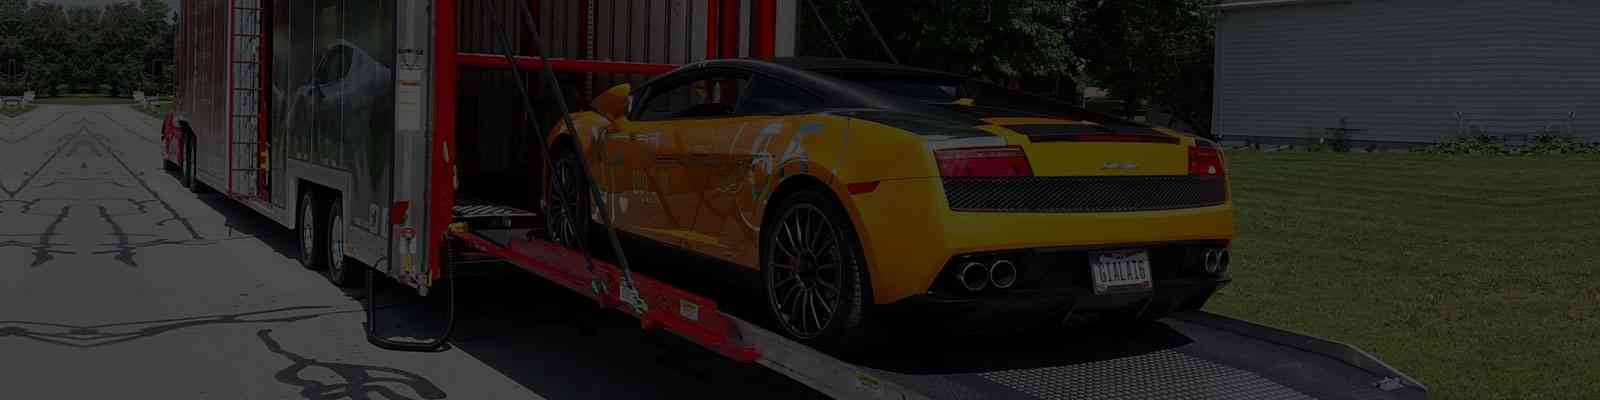 Ahmedabad Car Carriers Services